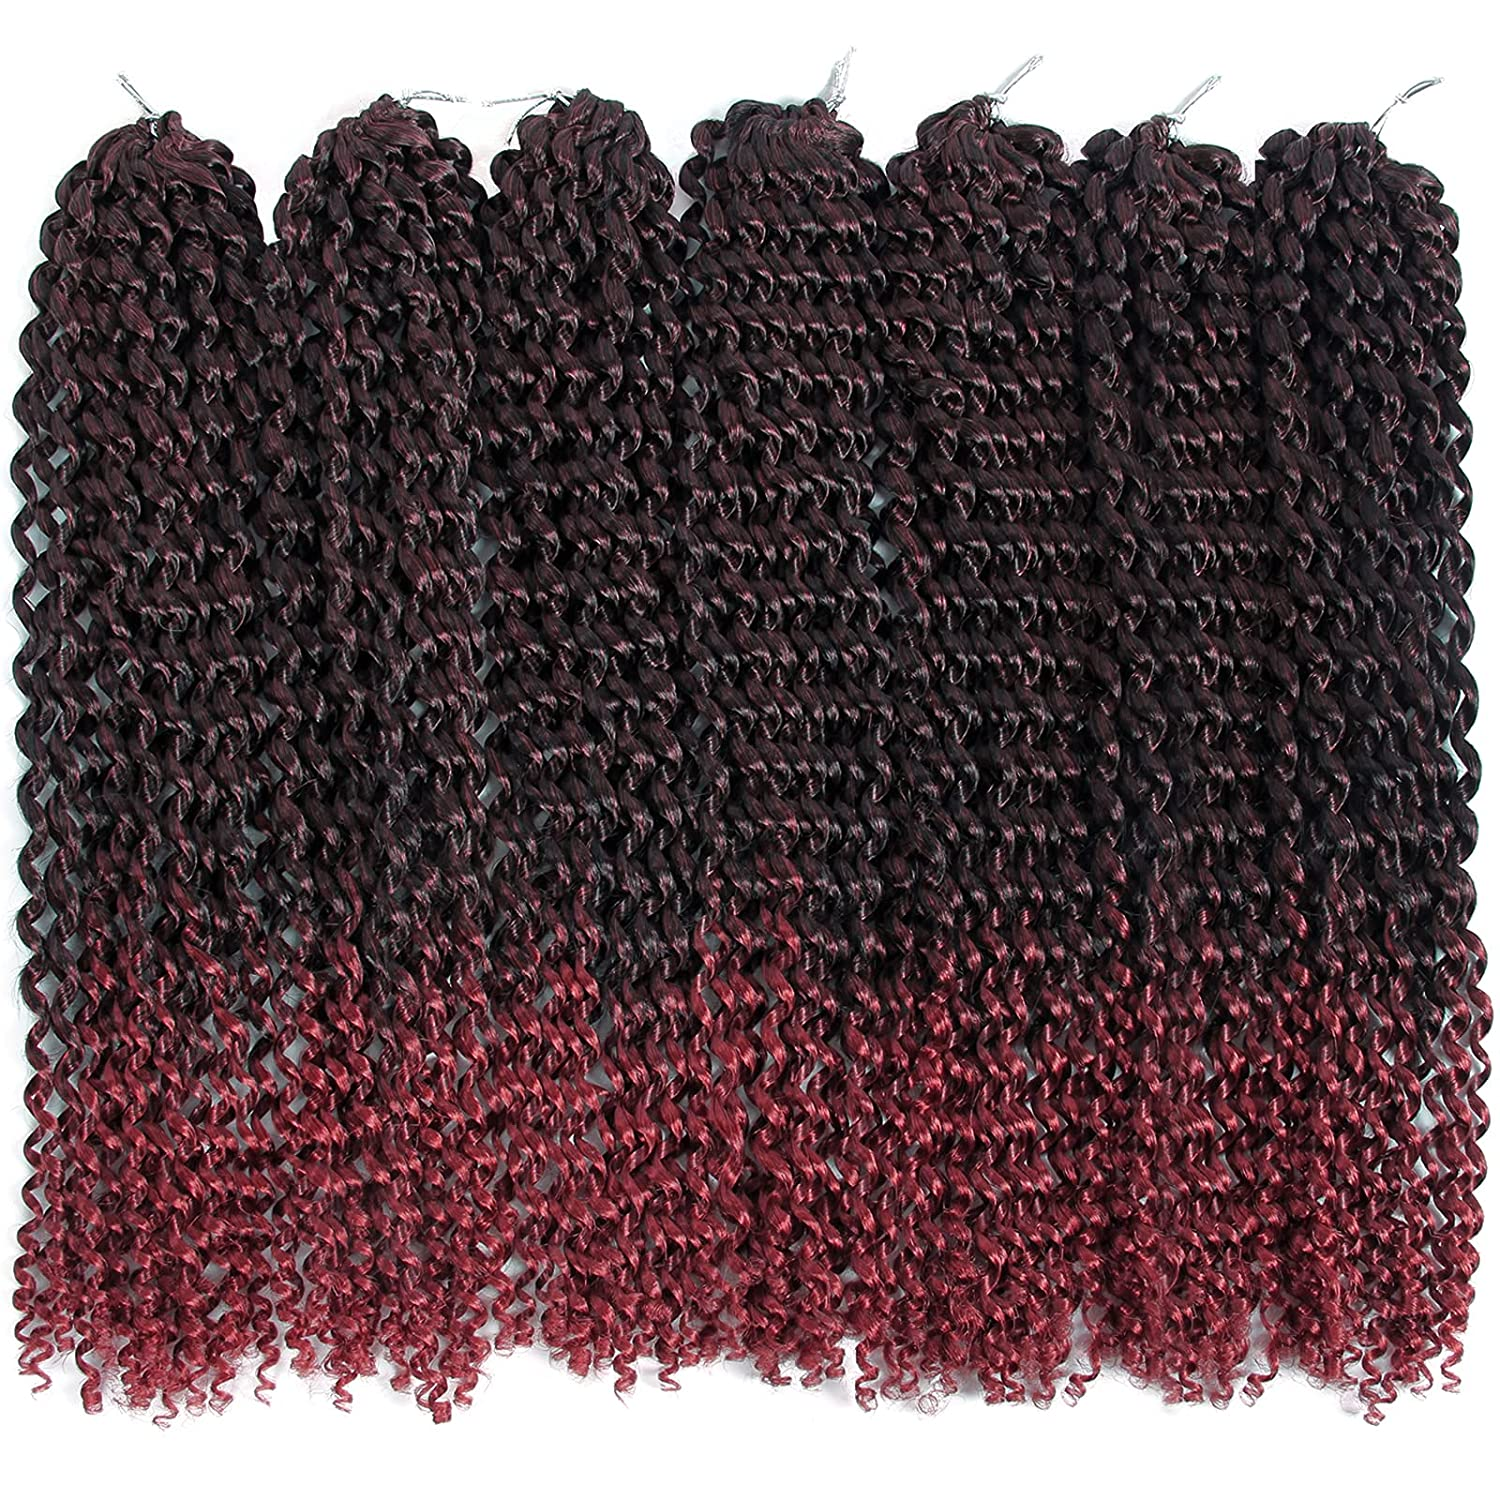 Passion Twist Crochet Max 45% OFF Hair 18 7Packs Import Wave Water Bra Inch